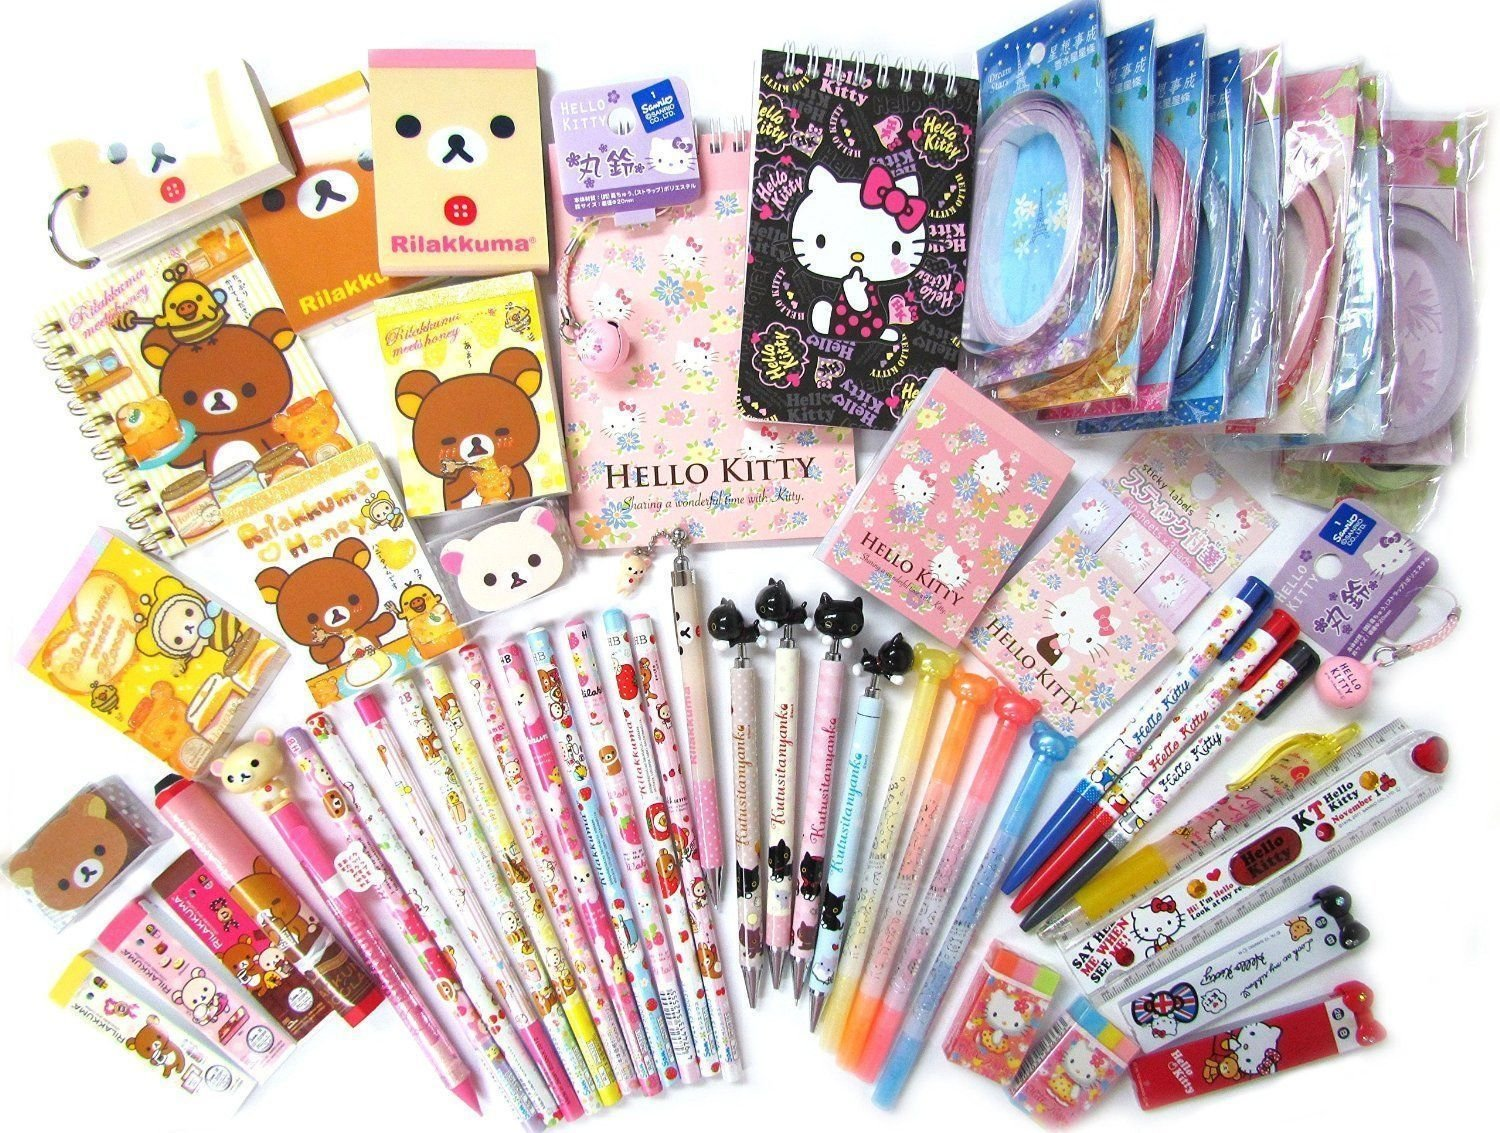 10 of Assorted School Supply Stationary Set (10 Items Will Be Randomly Selected From the Image Shown) San-x